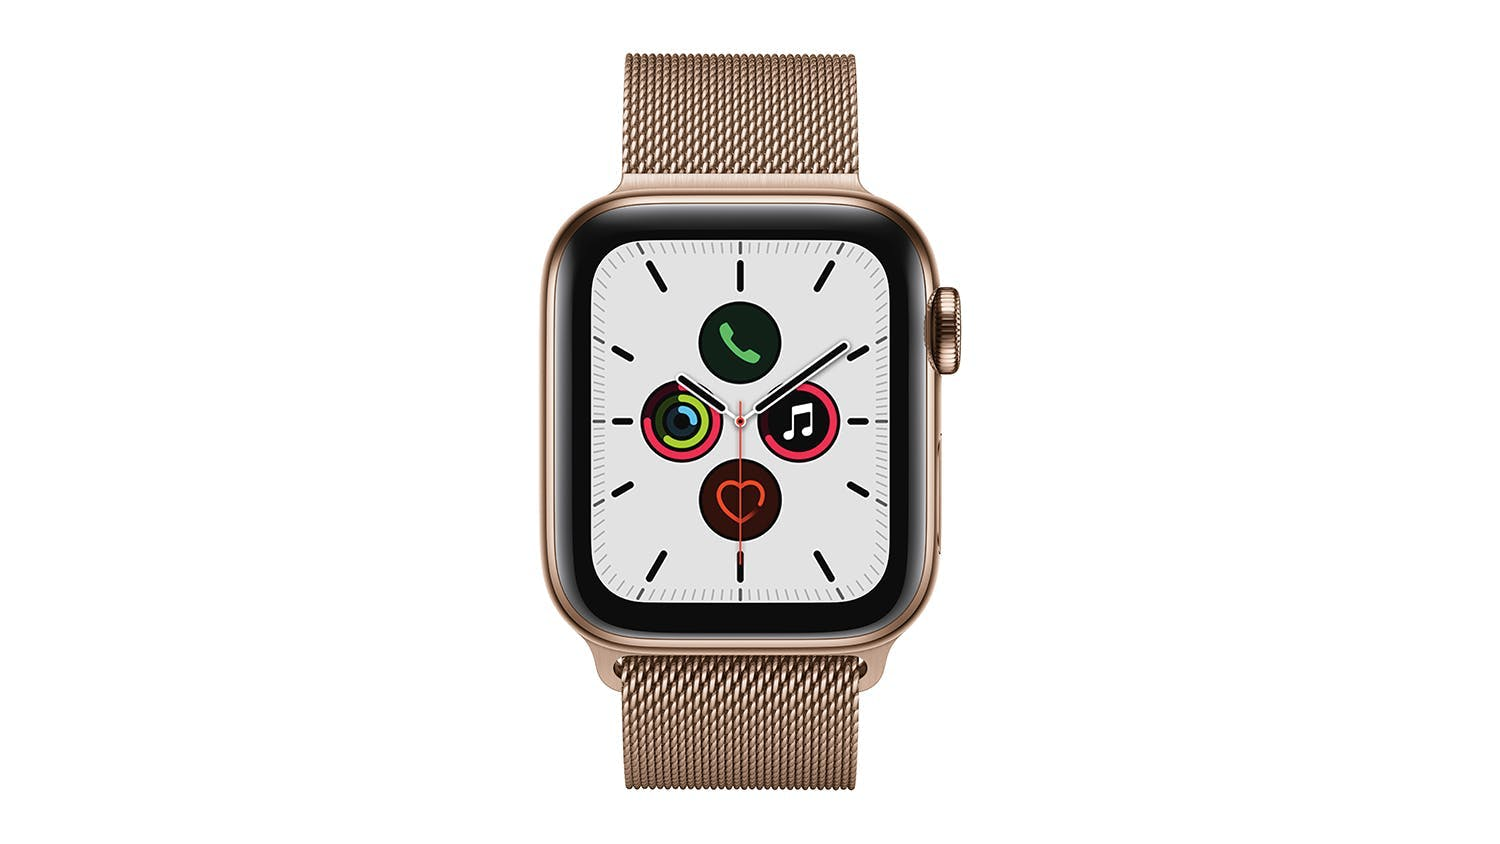 Apple Watch Series 5 (GPS+Cellular) 40mm Gold Stainless Steel + Gold Milanese Loop